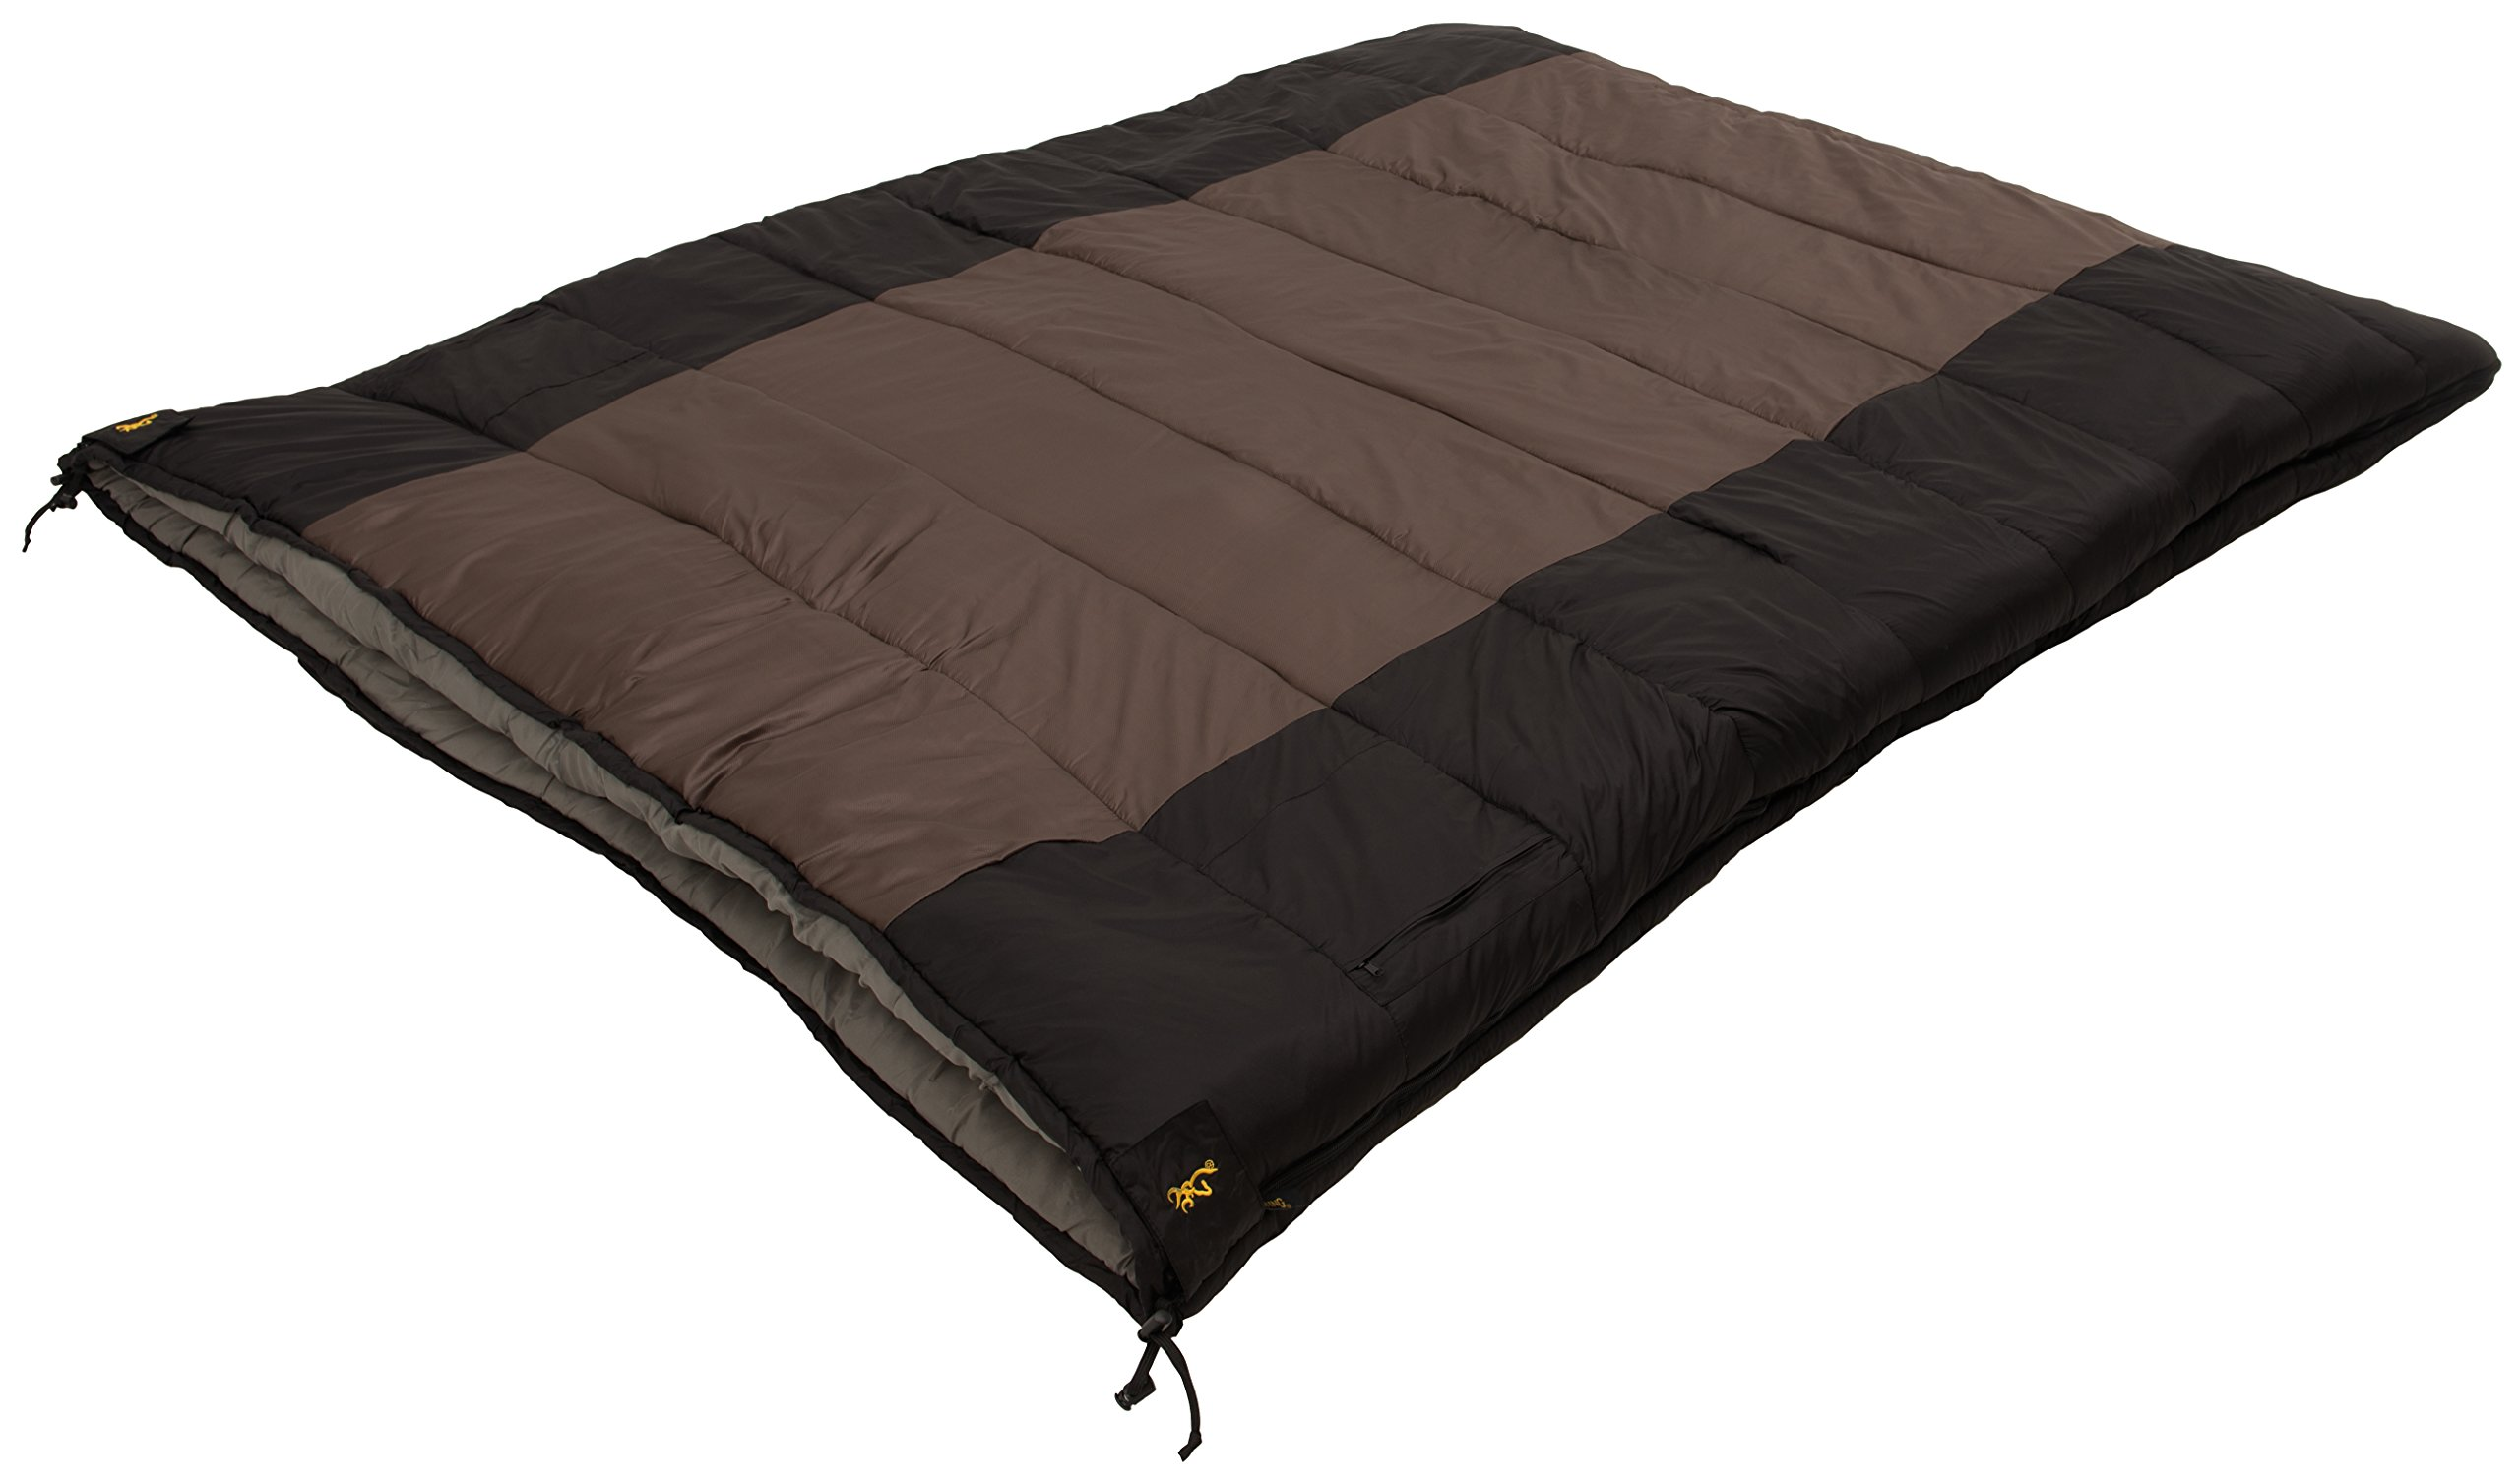 Browning Camping Side-by-Side 0 Degree Double Sleeping Bag by Browning Camping (Image #1)